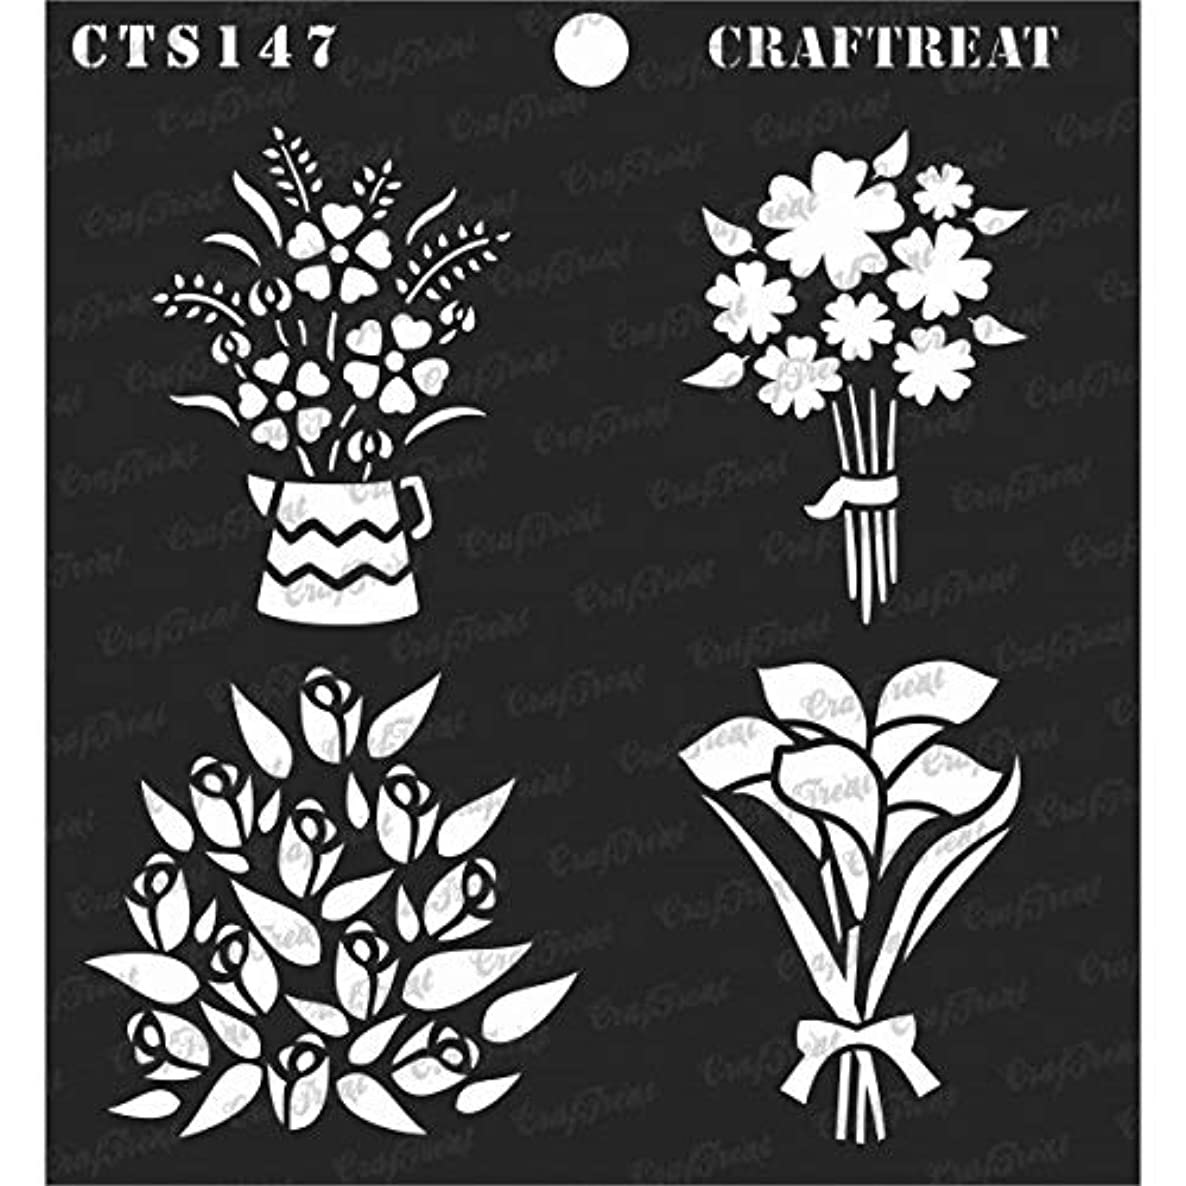 CrafTreat Stencil - Mini Bouquets | Reusable Painting Template for Journal, Notebook, Home Decor, Crafting, DIY Albums, Scrapbook and Printing on Paper, Floor, Wall, Tile, Fabric, Wood 6